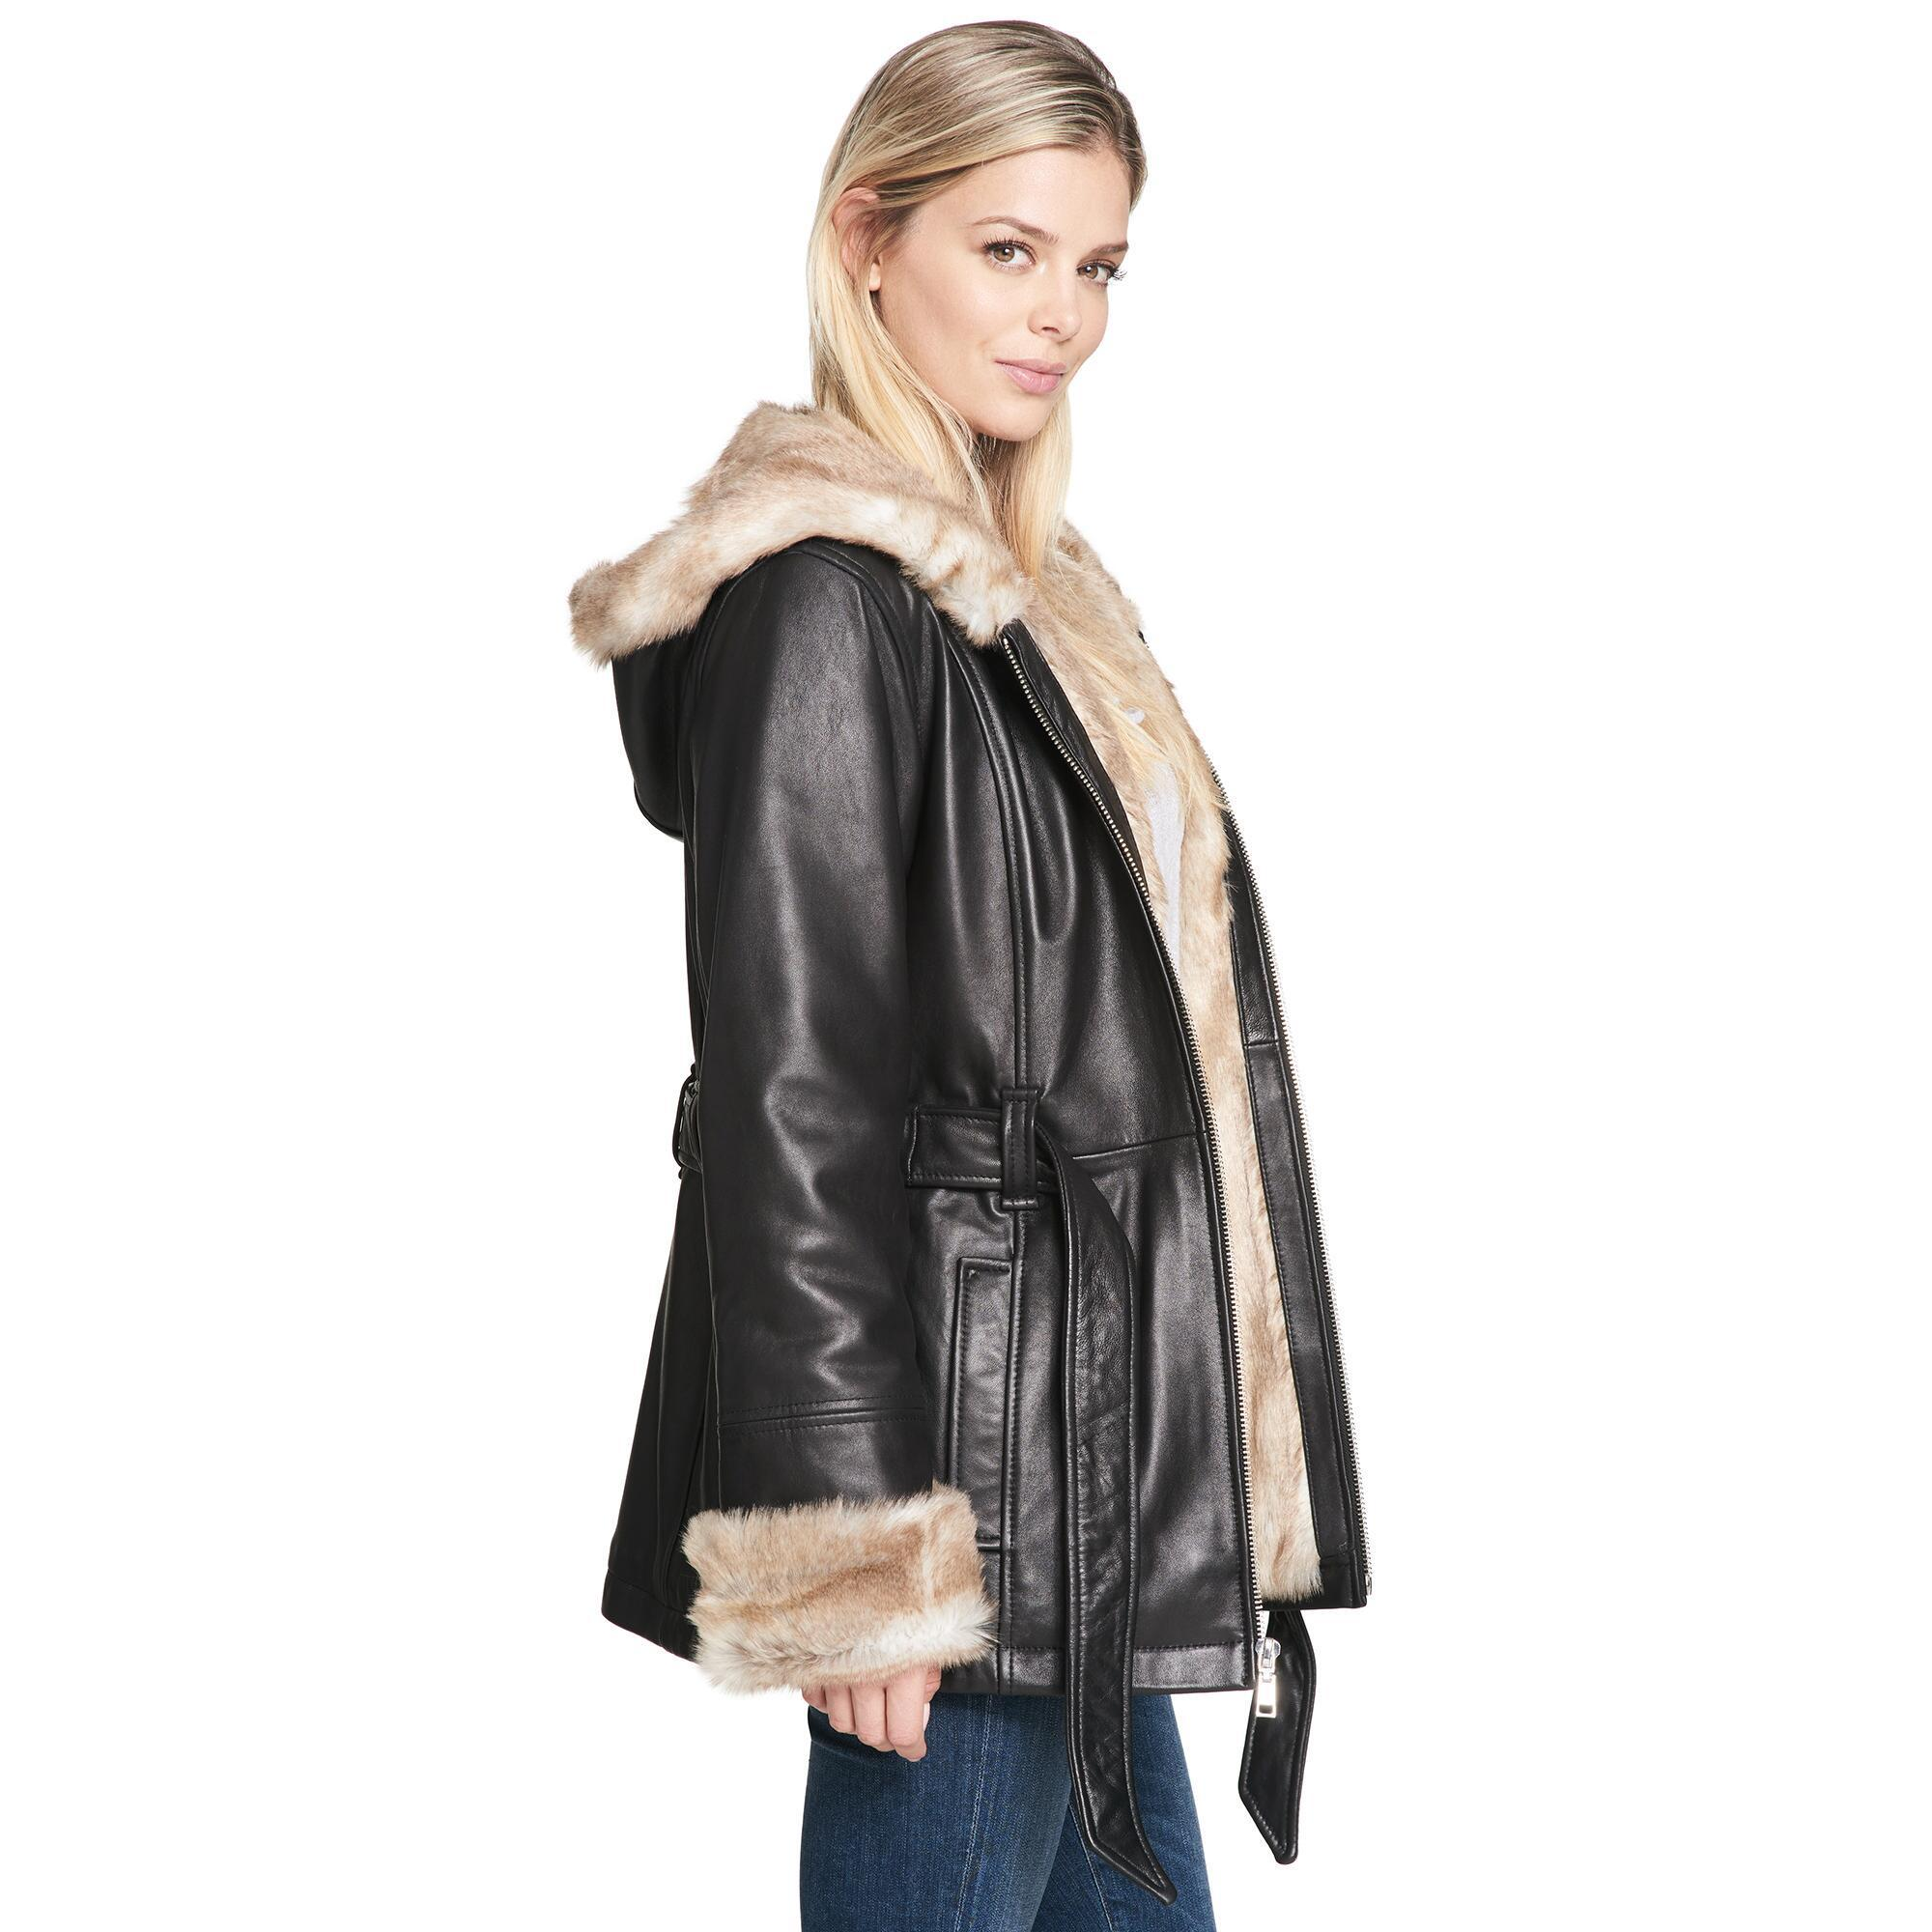 b5bb81f1a3580 Wilsons Leather - Black Plus Size Vintage Belted Leather Jacket W  Faux-fur  Lining. View fullscreen